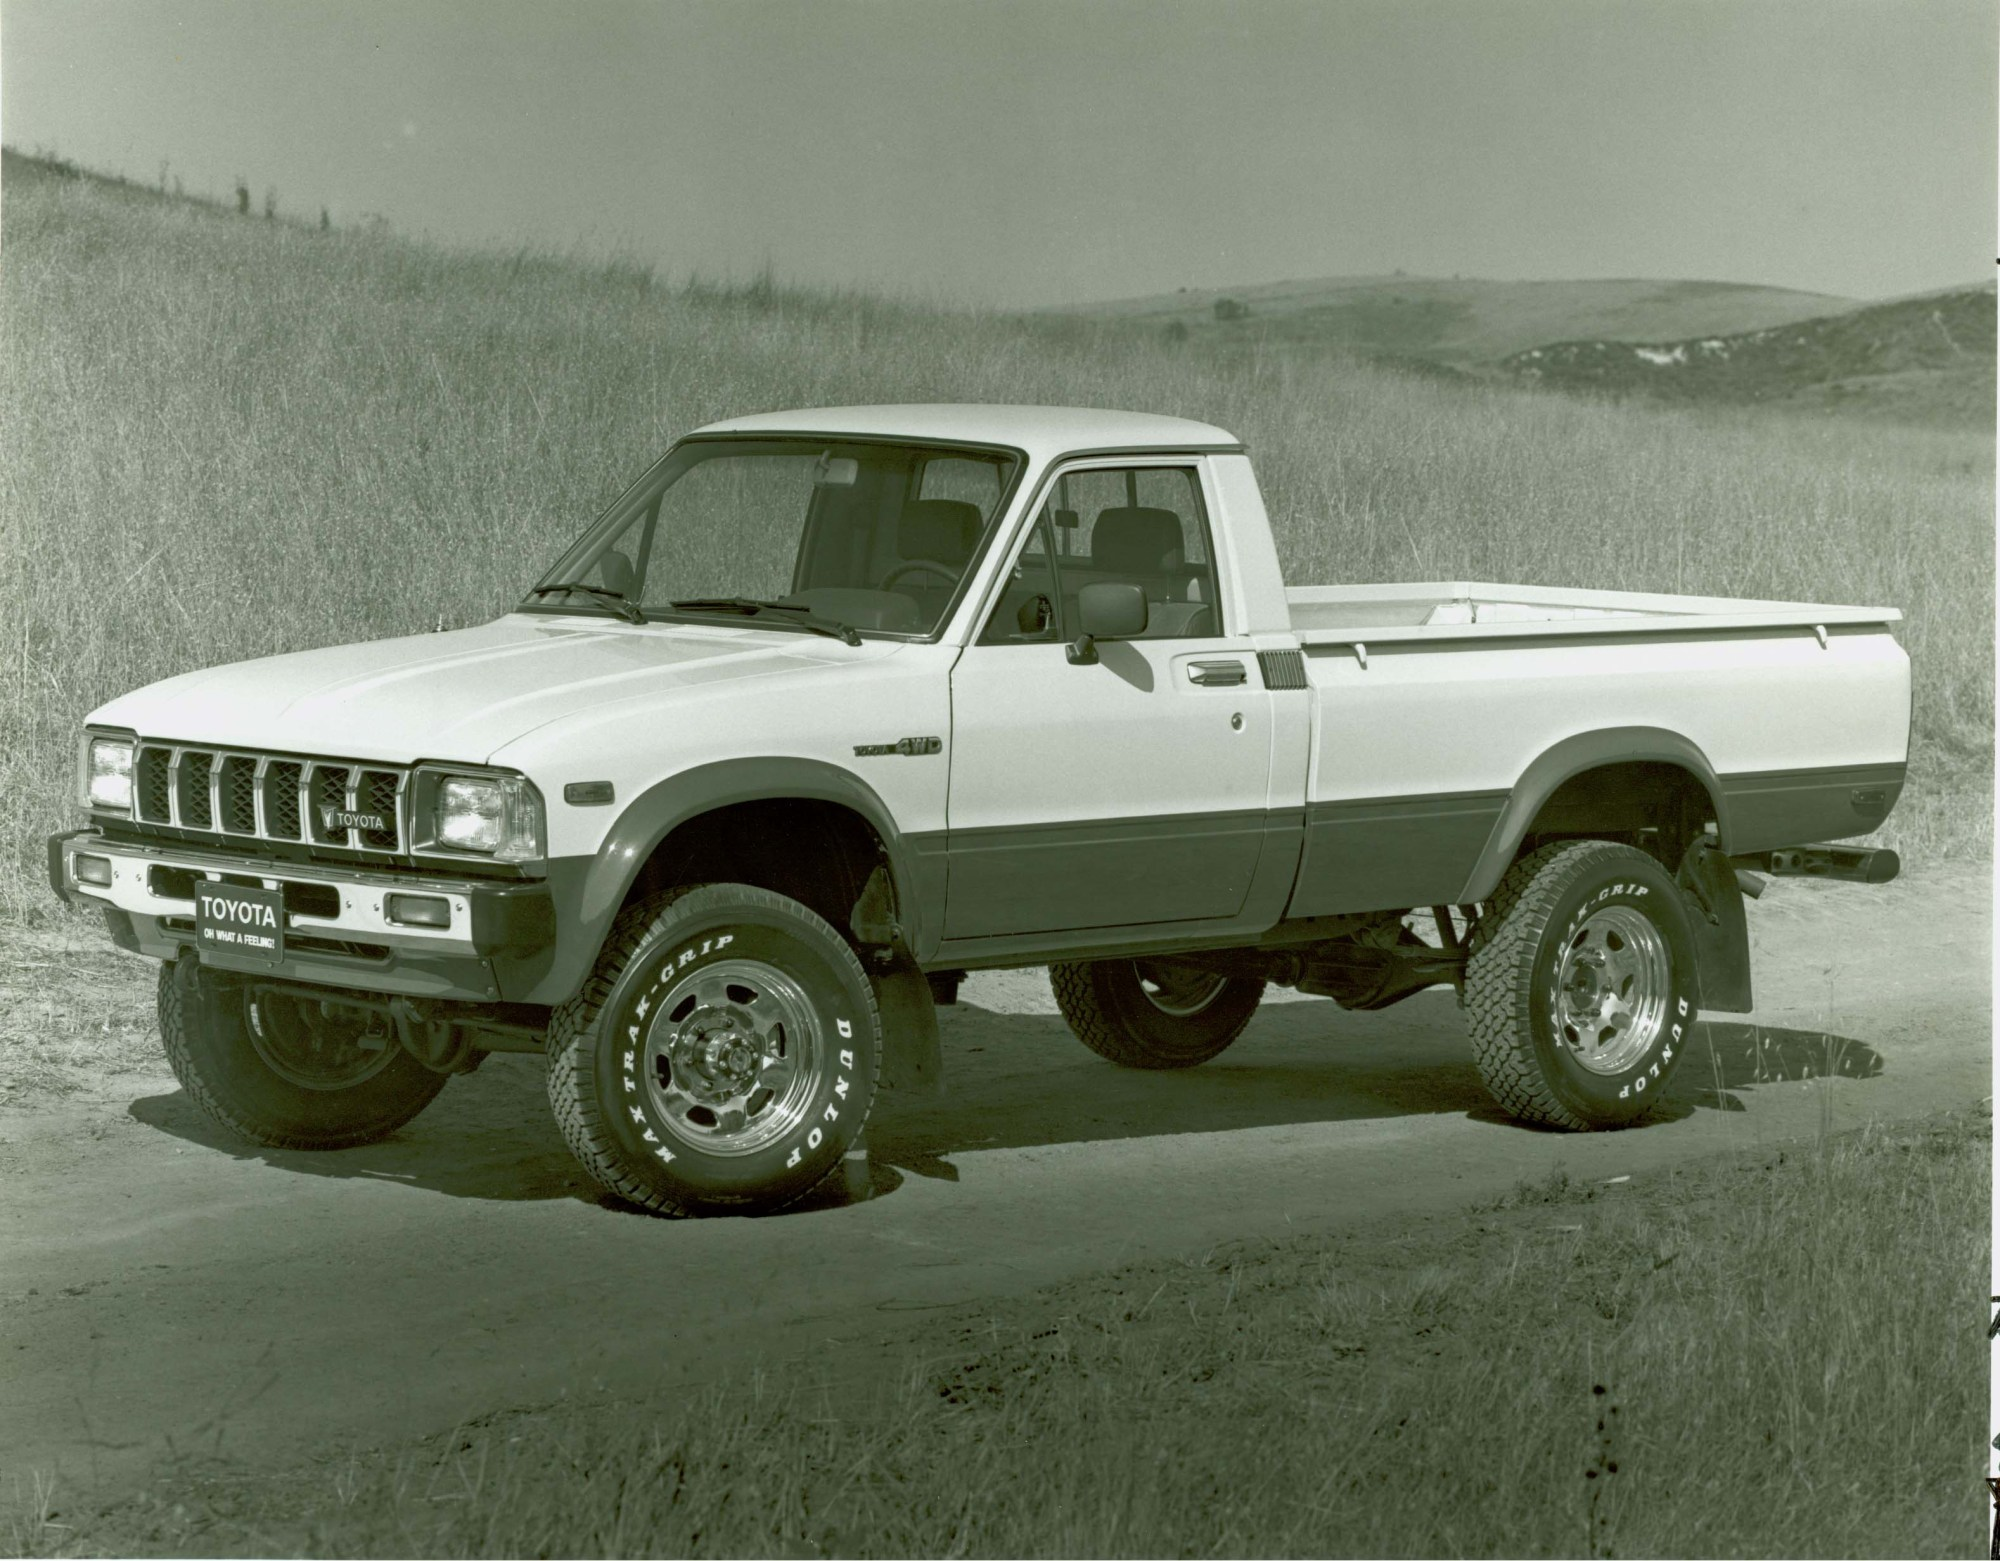 hight resolution of 1983 toyota truck 010 download high resolution